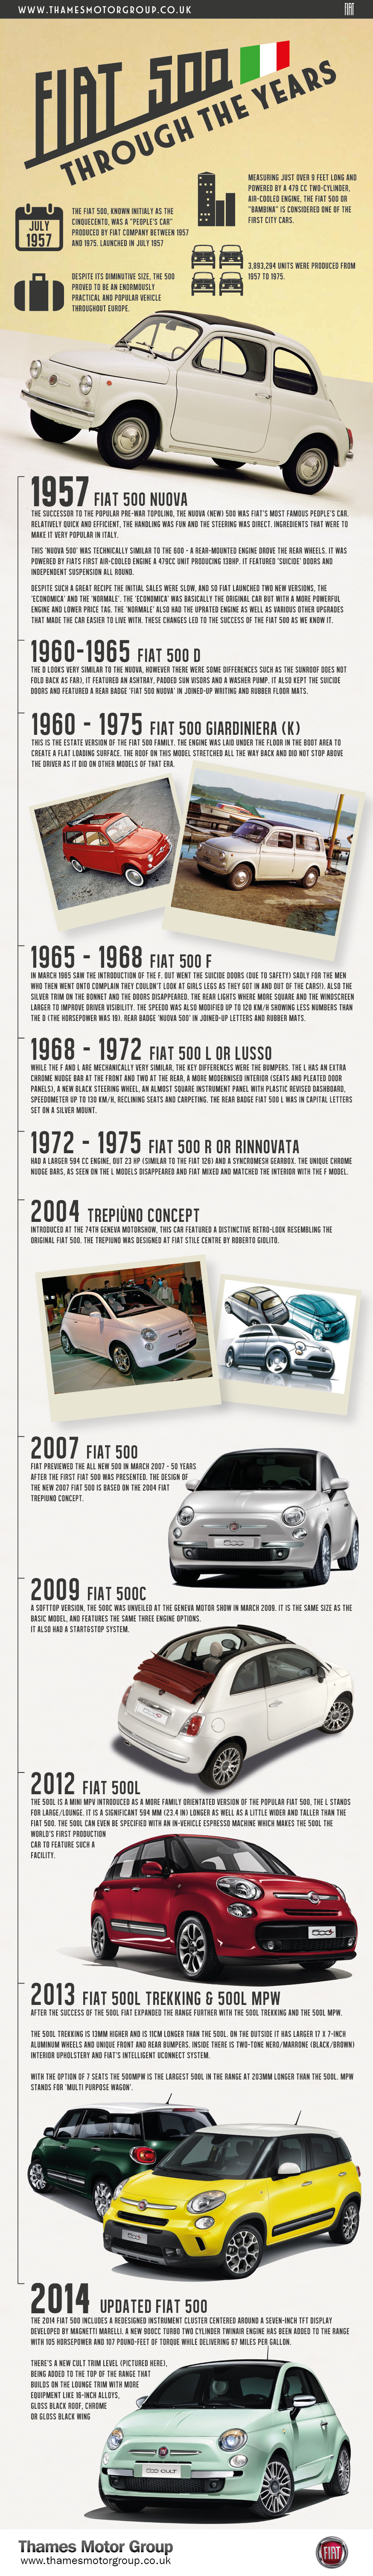 FIAT 500 Through The Years